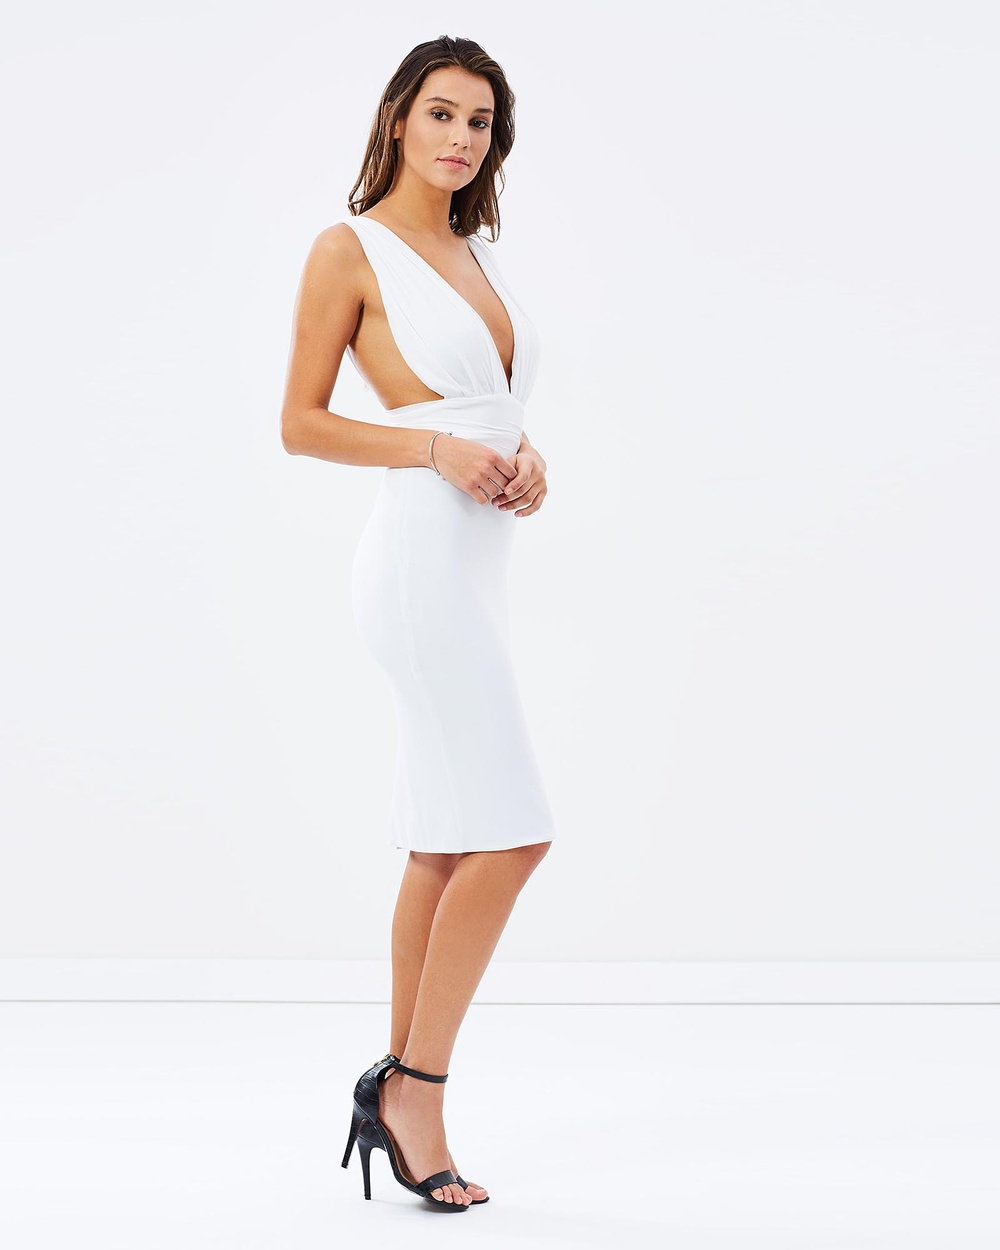 SKIVA Deep V Cocktail Dress Dresses White Deep V Cocktail Dress